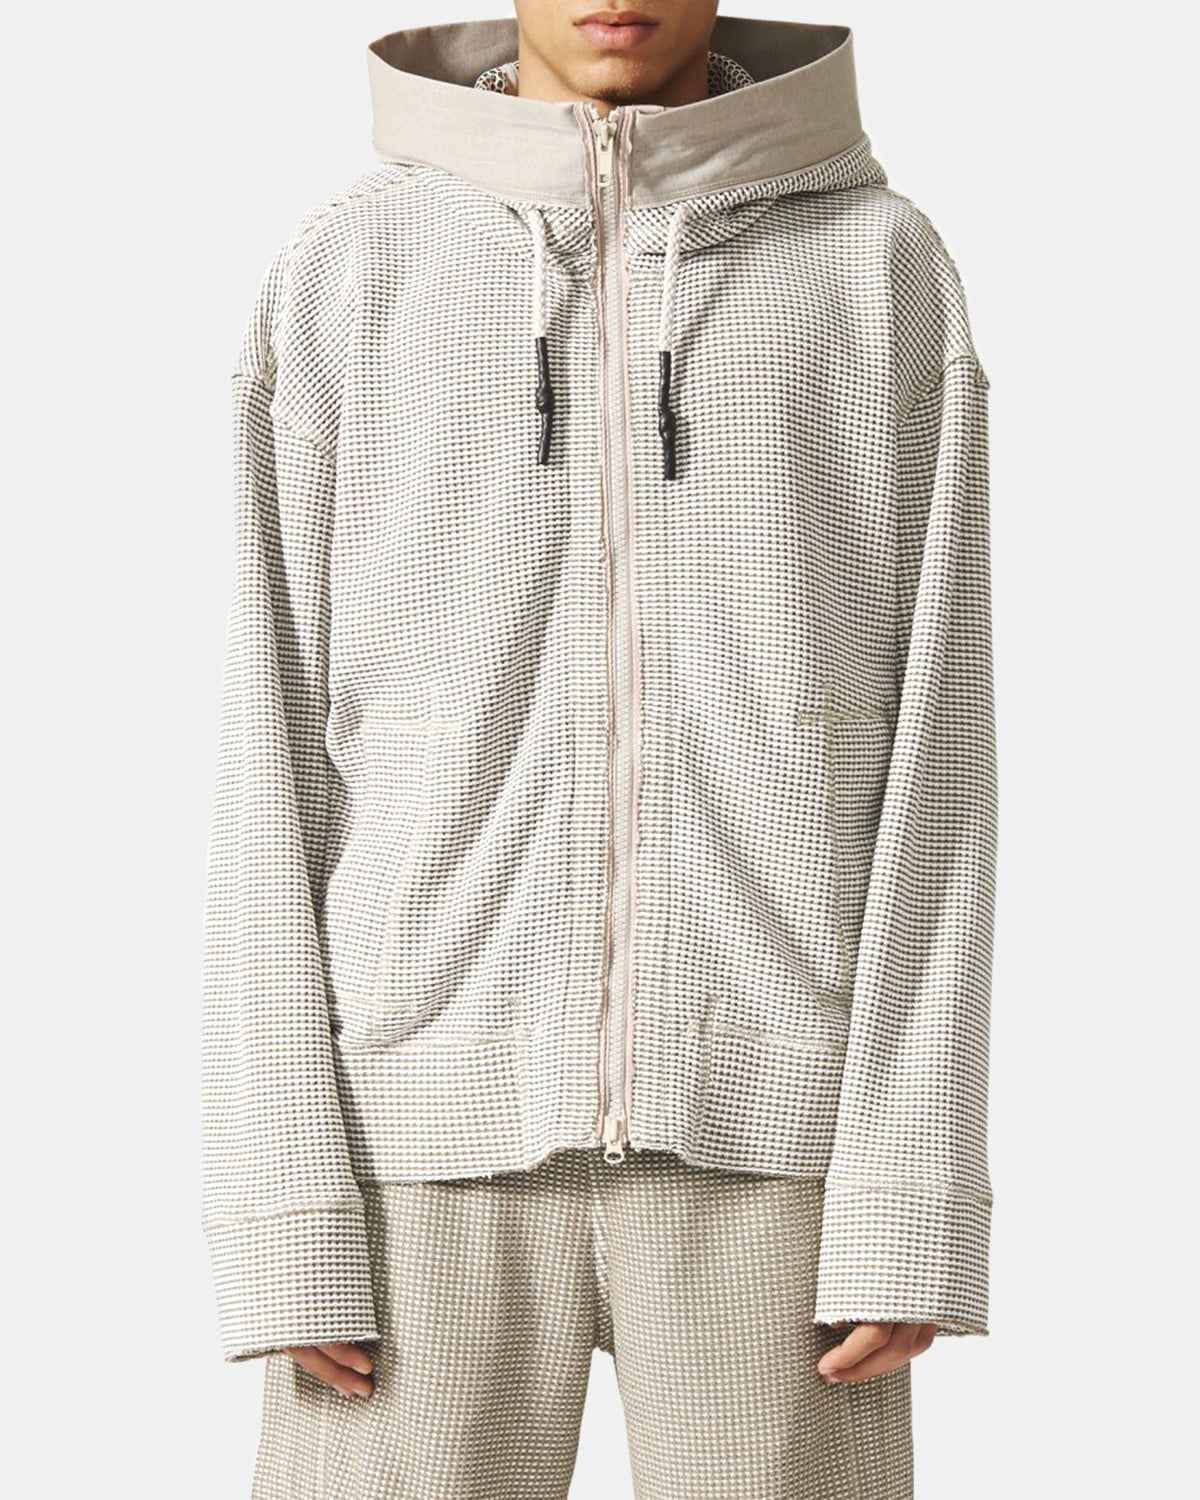 adidas - Day One Waffle Hooded Track Top (Creme | Brown)